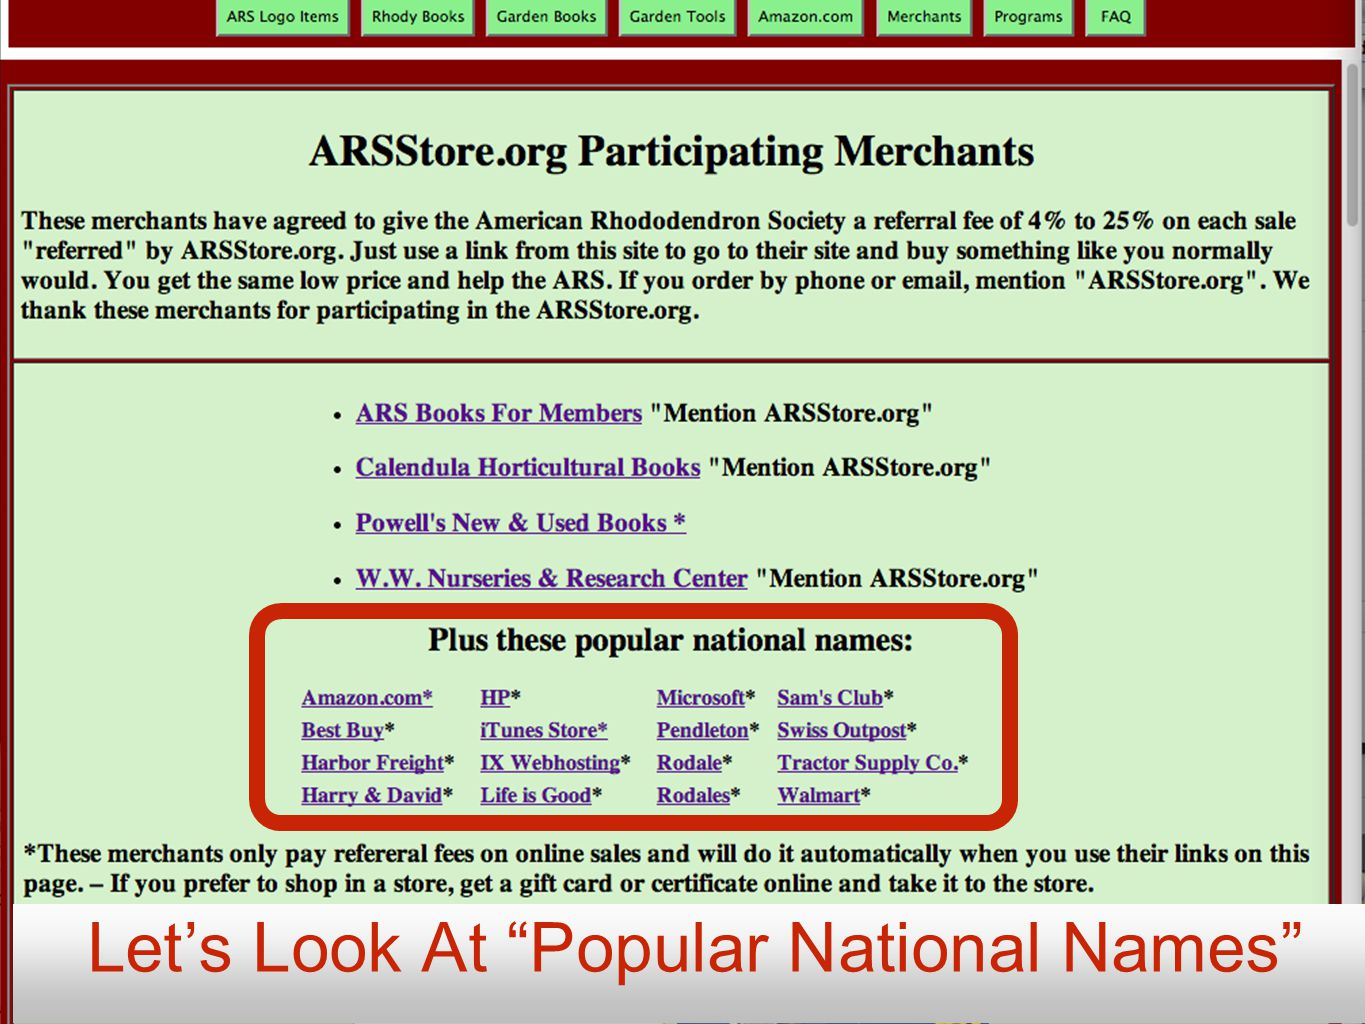 Let's Look At Popular National Names